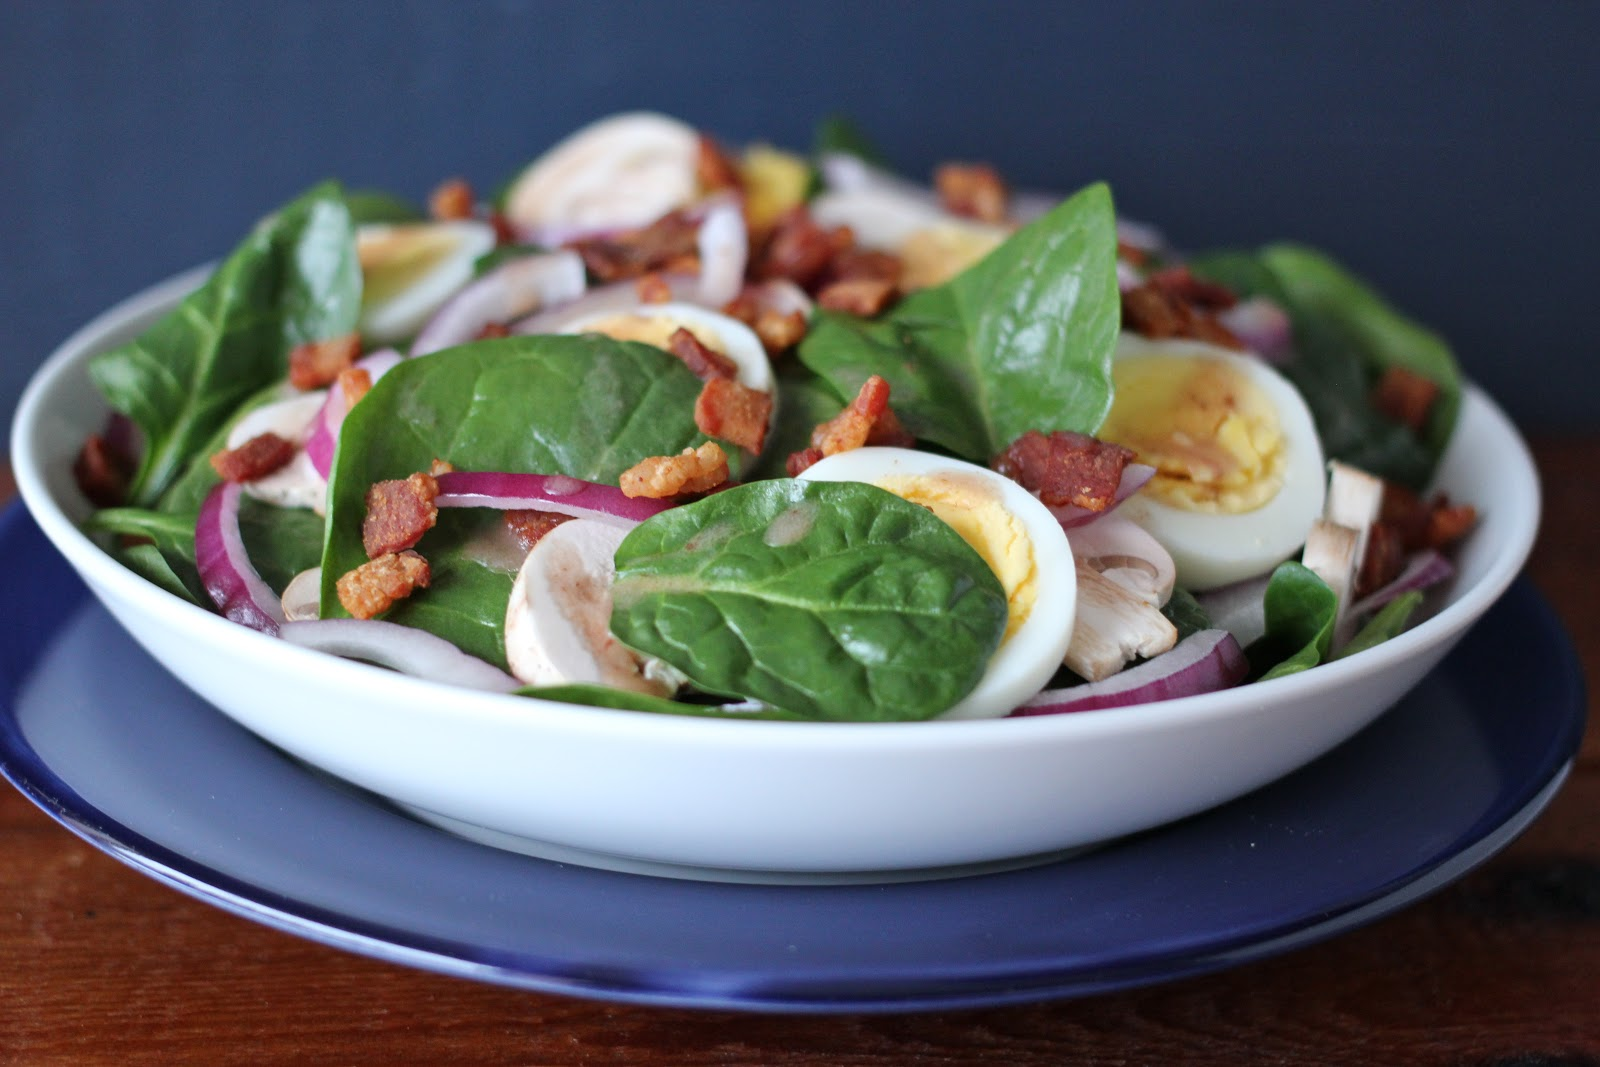 Arctic Garden Studio: Spinach Salad with Hot Bacon Dressing